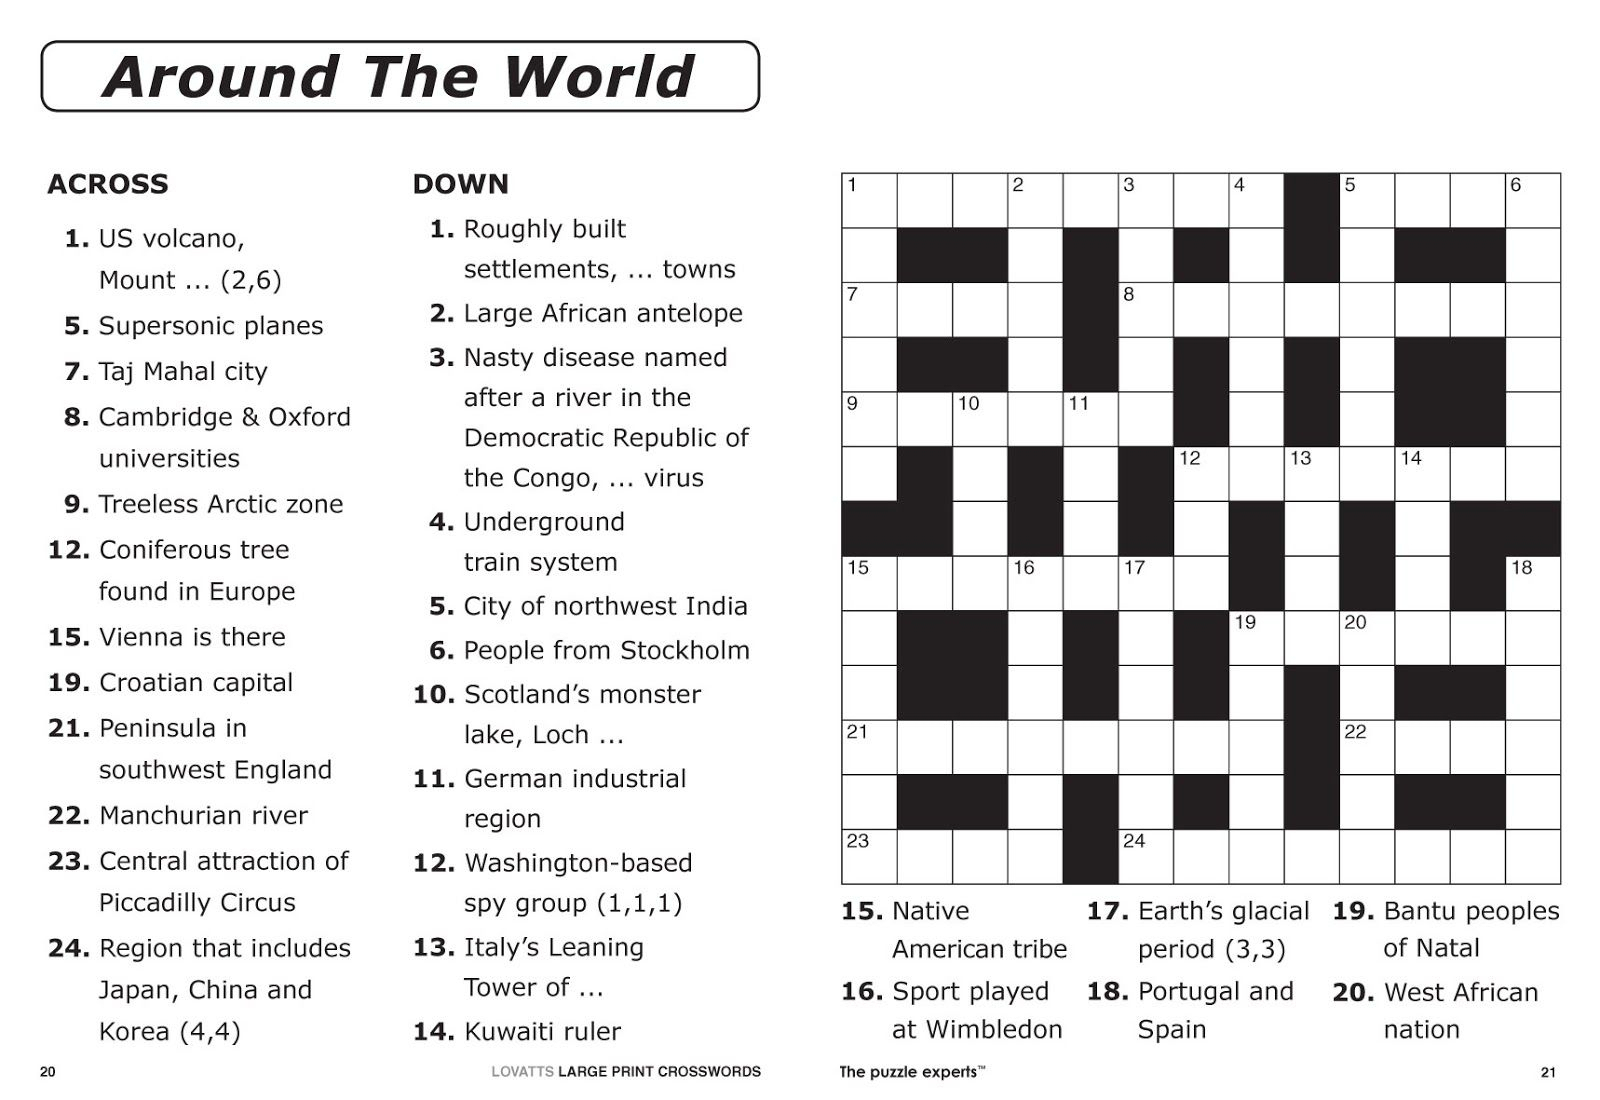 Free Printable Large Print Crossword Puzzles | M3U8 - Printable Crossword Puzzles Pdf Easy